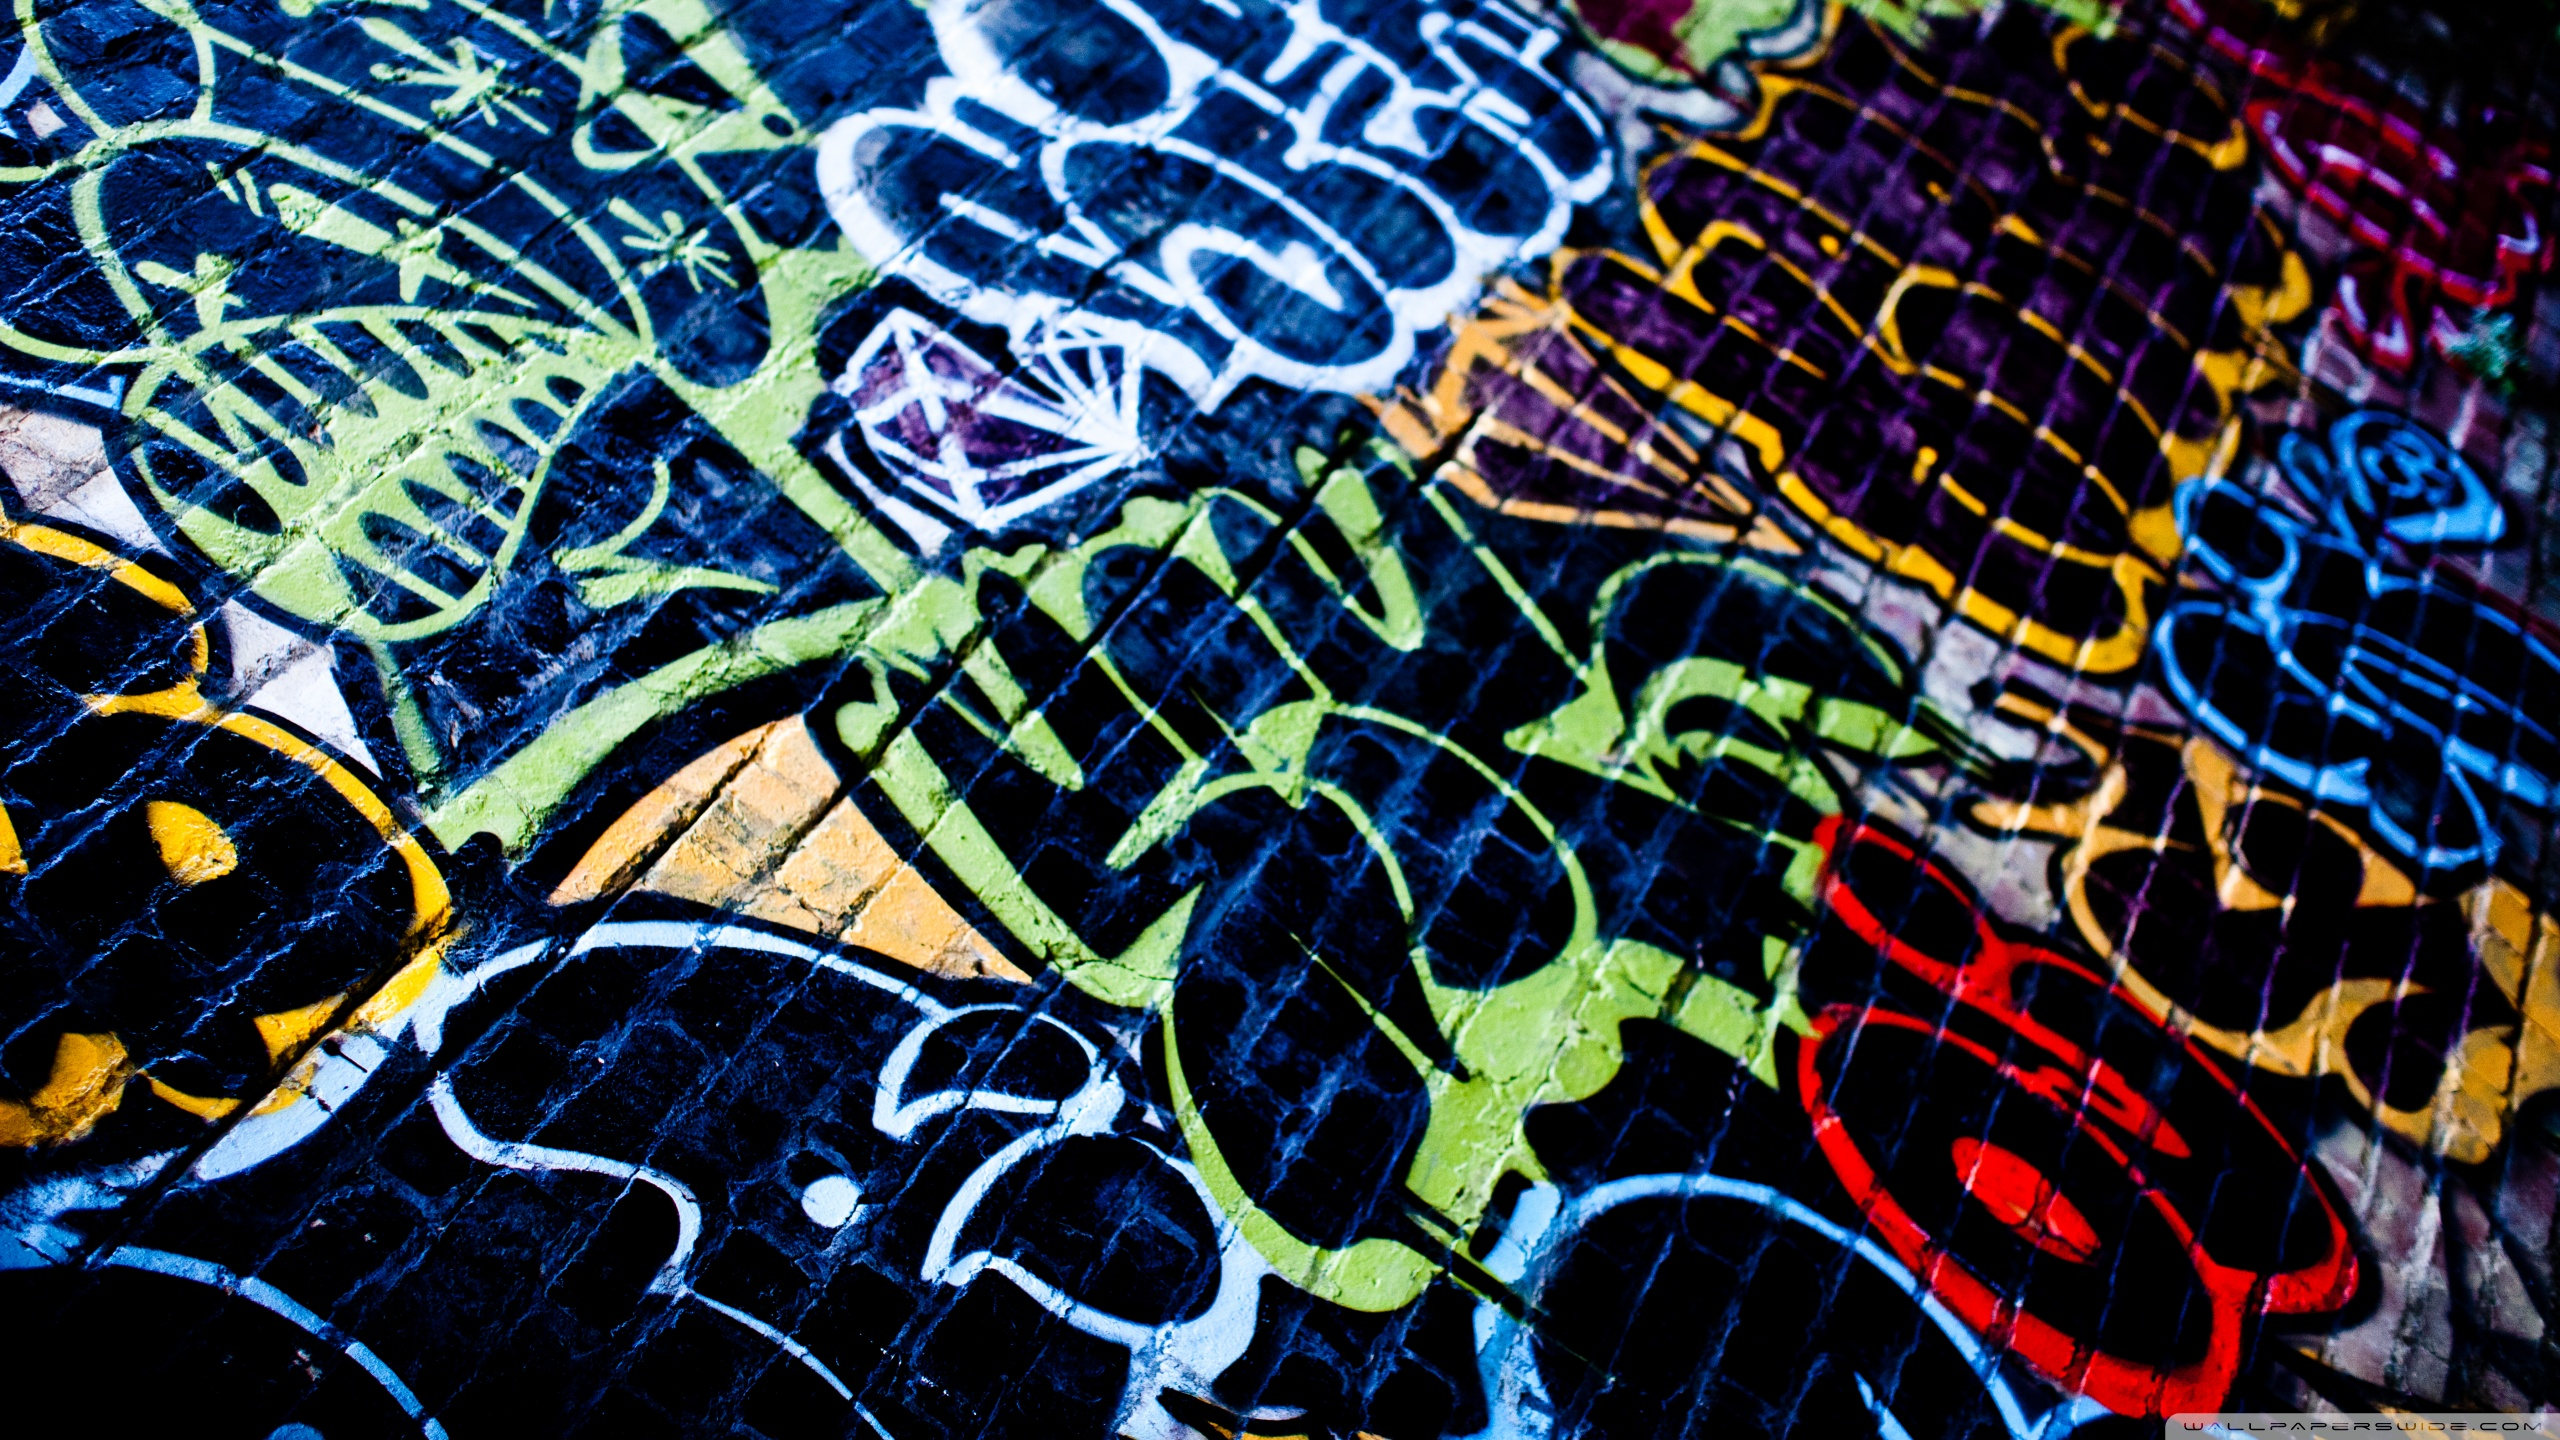 graffiti wallpapers, photos and desktop backgrounds up to 8k